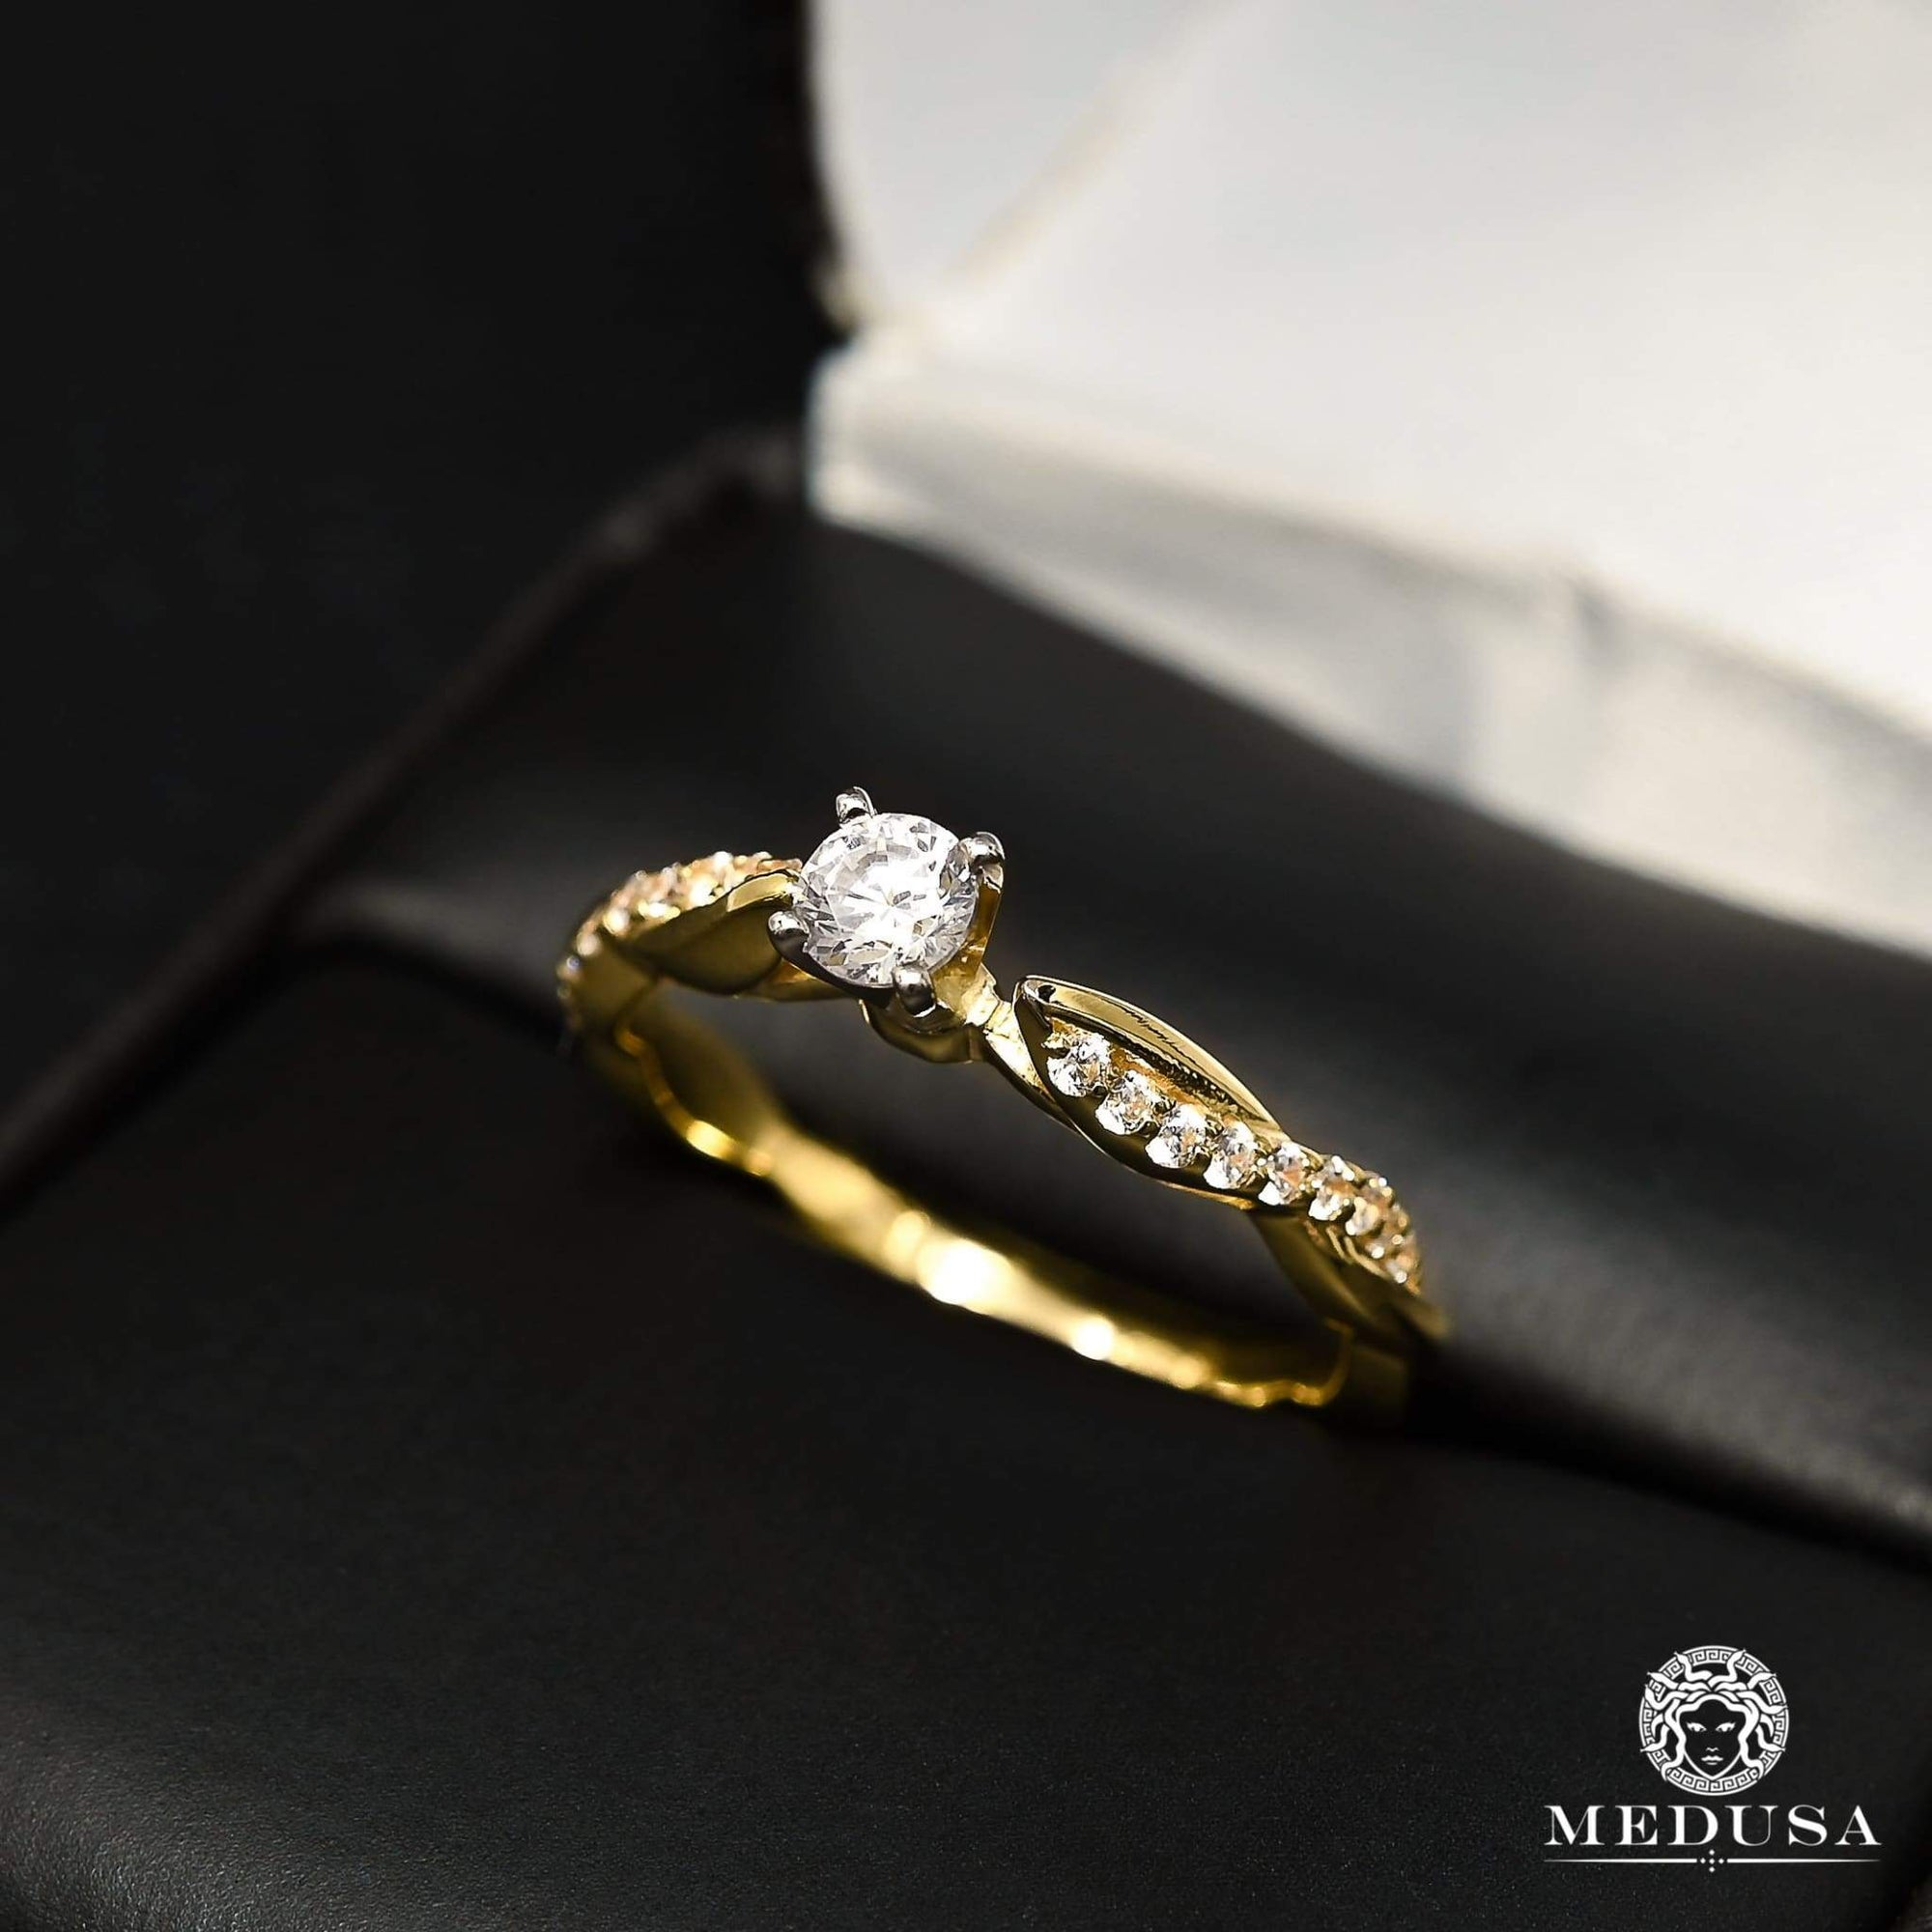 Bague à Diamants en Or 14K | Bague Fiançaille Solitaire F30 - MA0862 Or Jaune